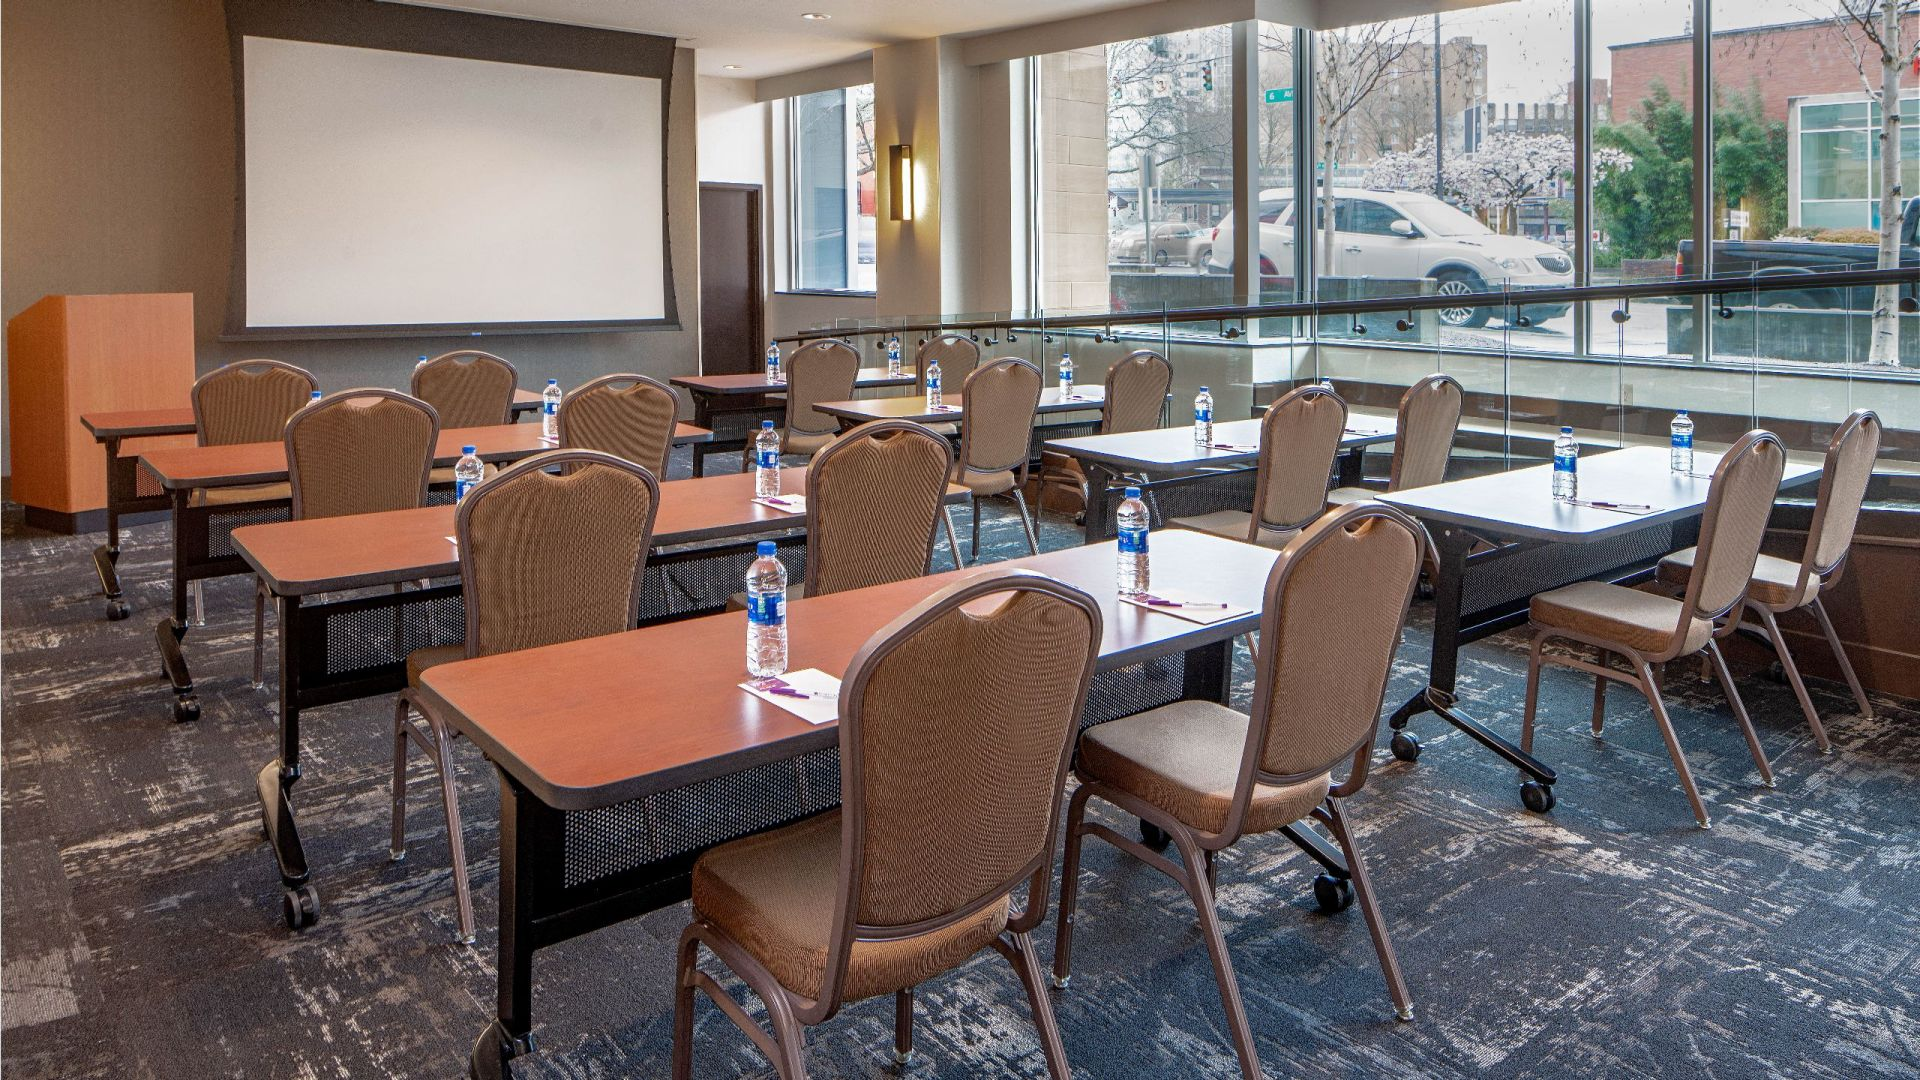 Hyatt Place Meeting Table Set-up Seattle Downtown hotel